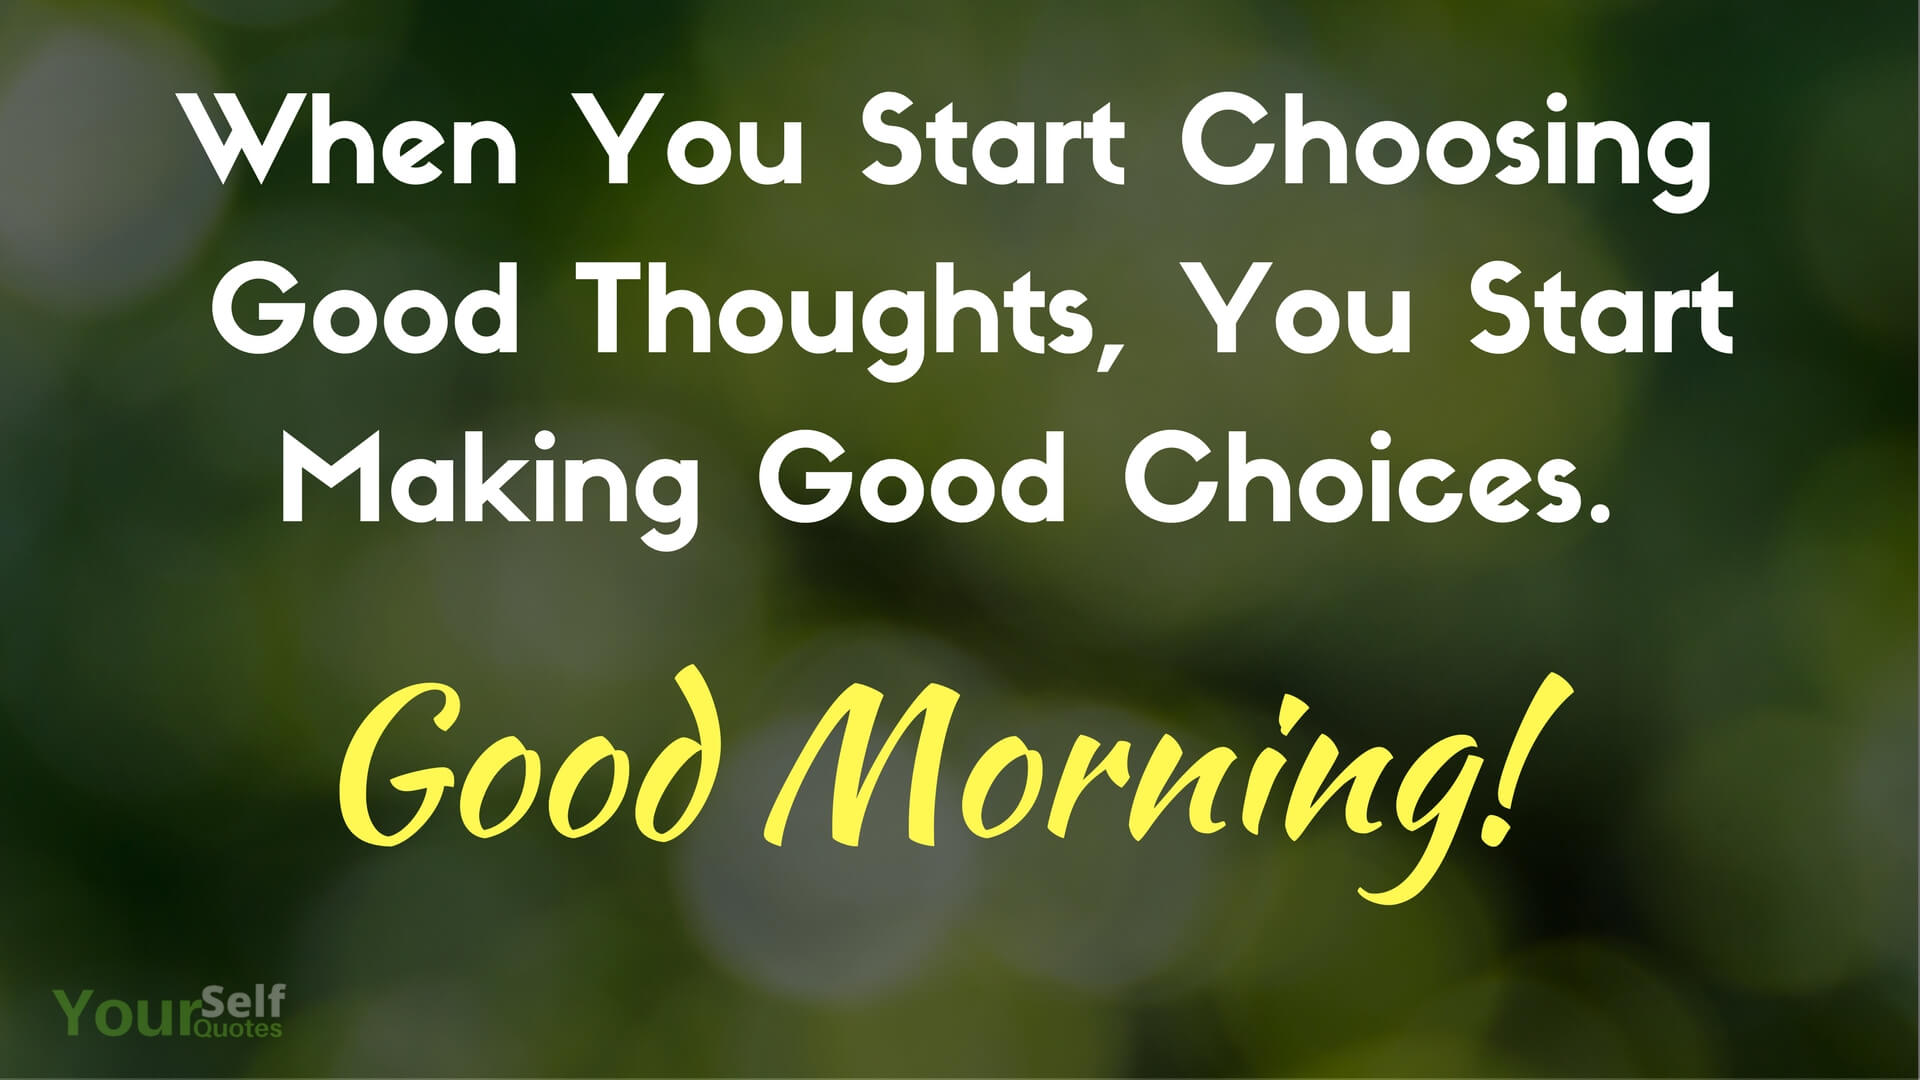 Good Morning Thoughts Images